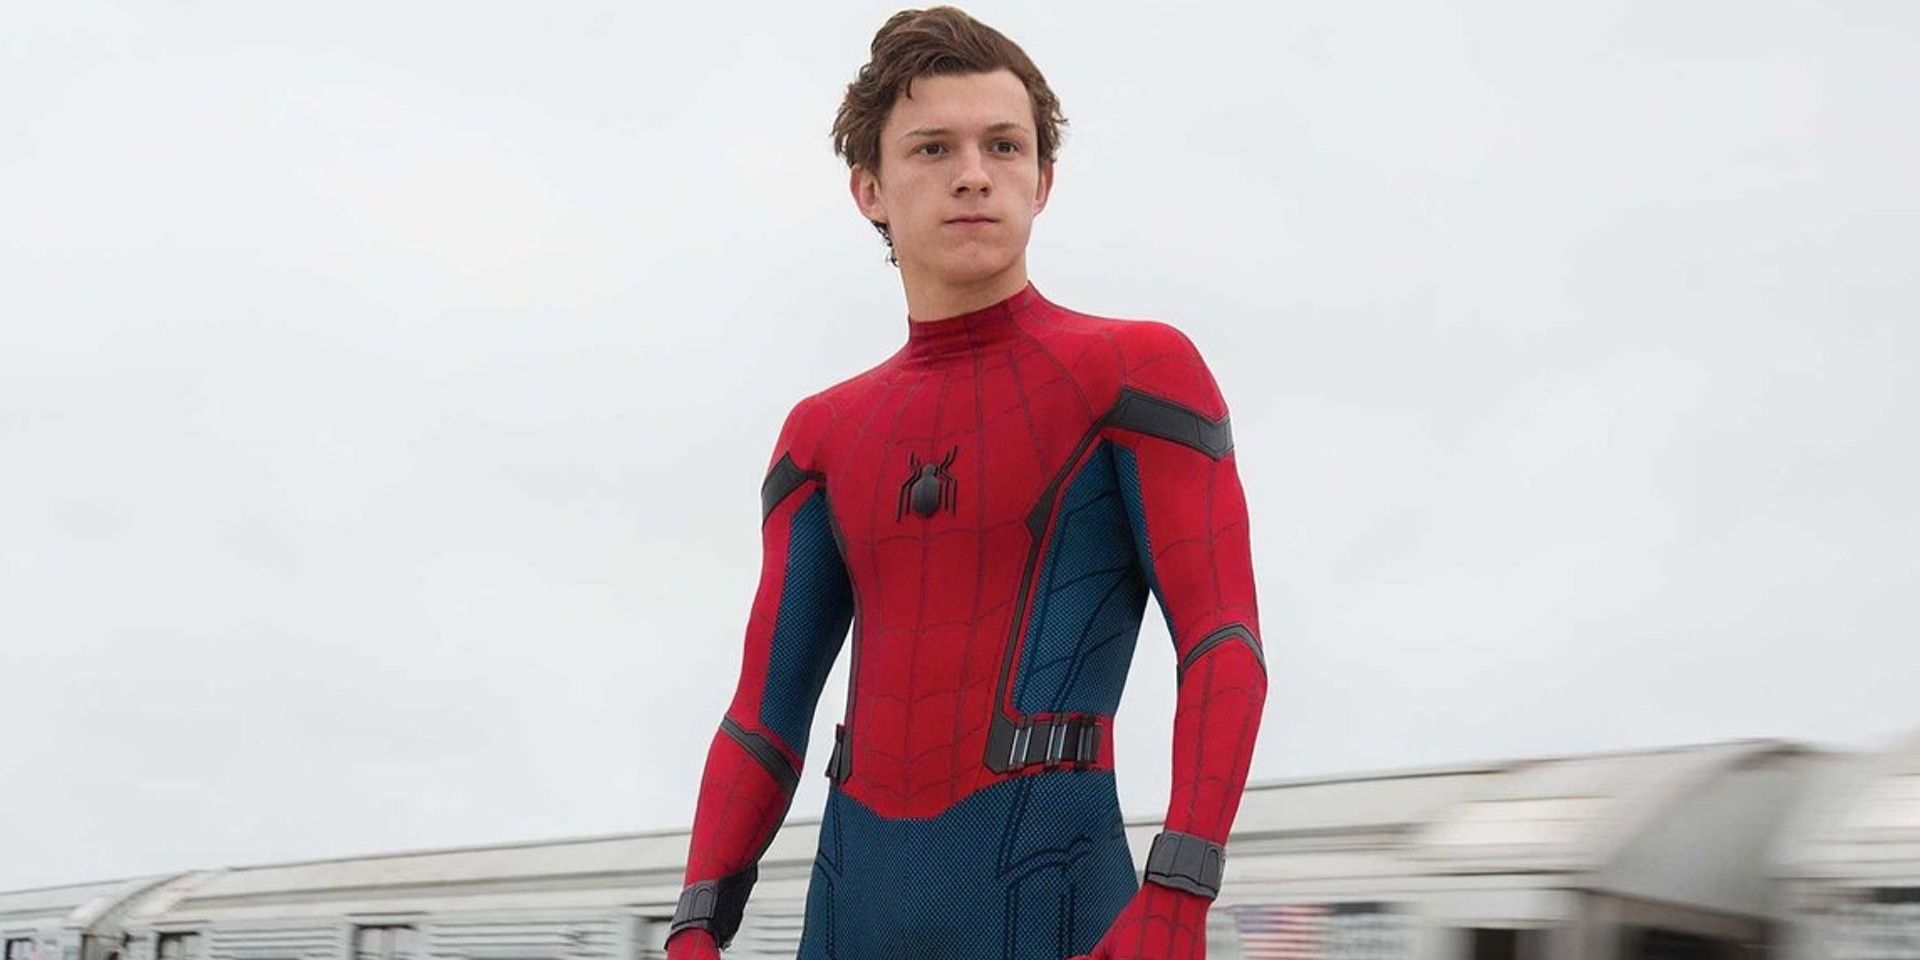 Spider-Man 3's Tom Holland Teases Best Day of His Career With Set Photo